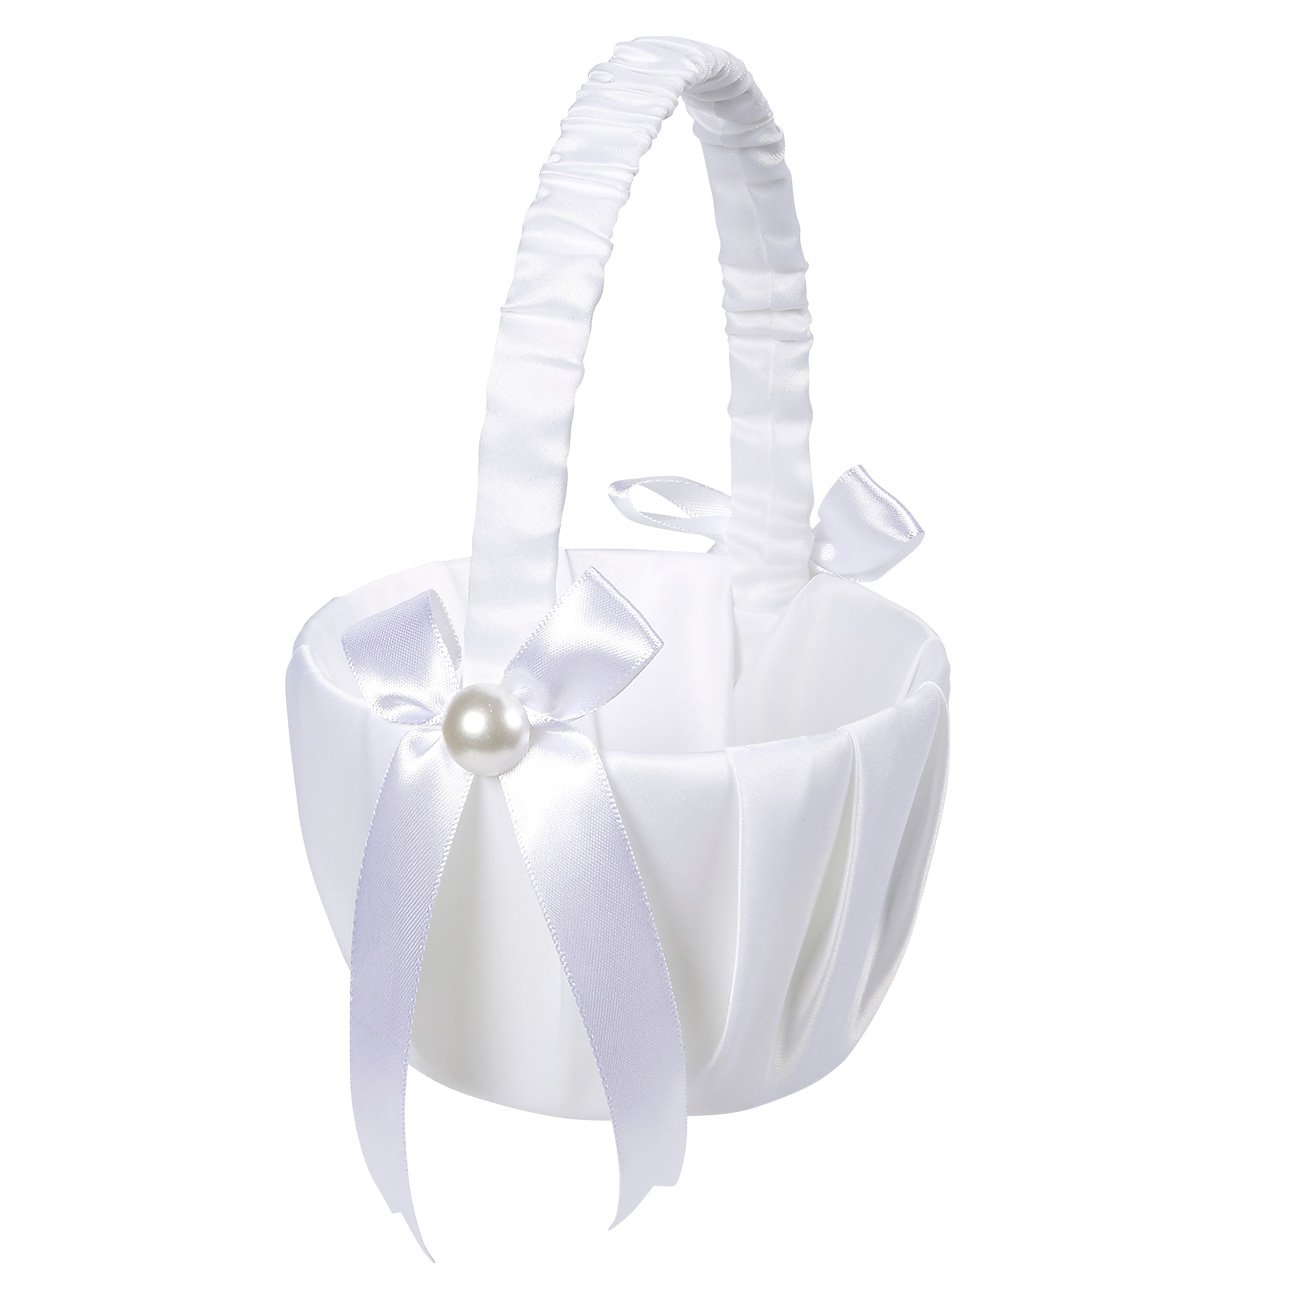 Juvale Flower Girl Basket – White Flower Basket, Wedding Basket for Matrimony Processions, Cute Satin Holder for Rose Petals, Reception Decoration, White, 8.7 x 5.2 x 4.2 Inches by Juvale